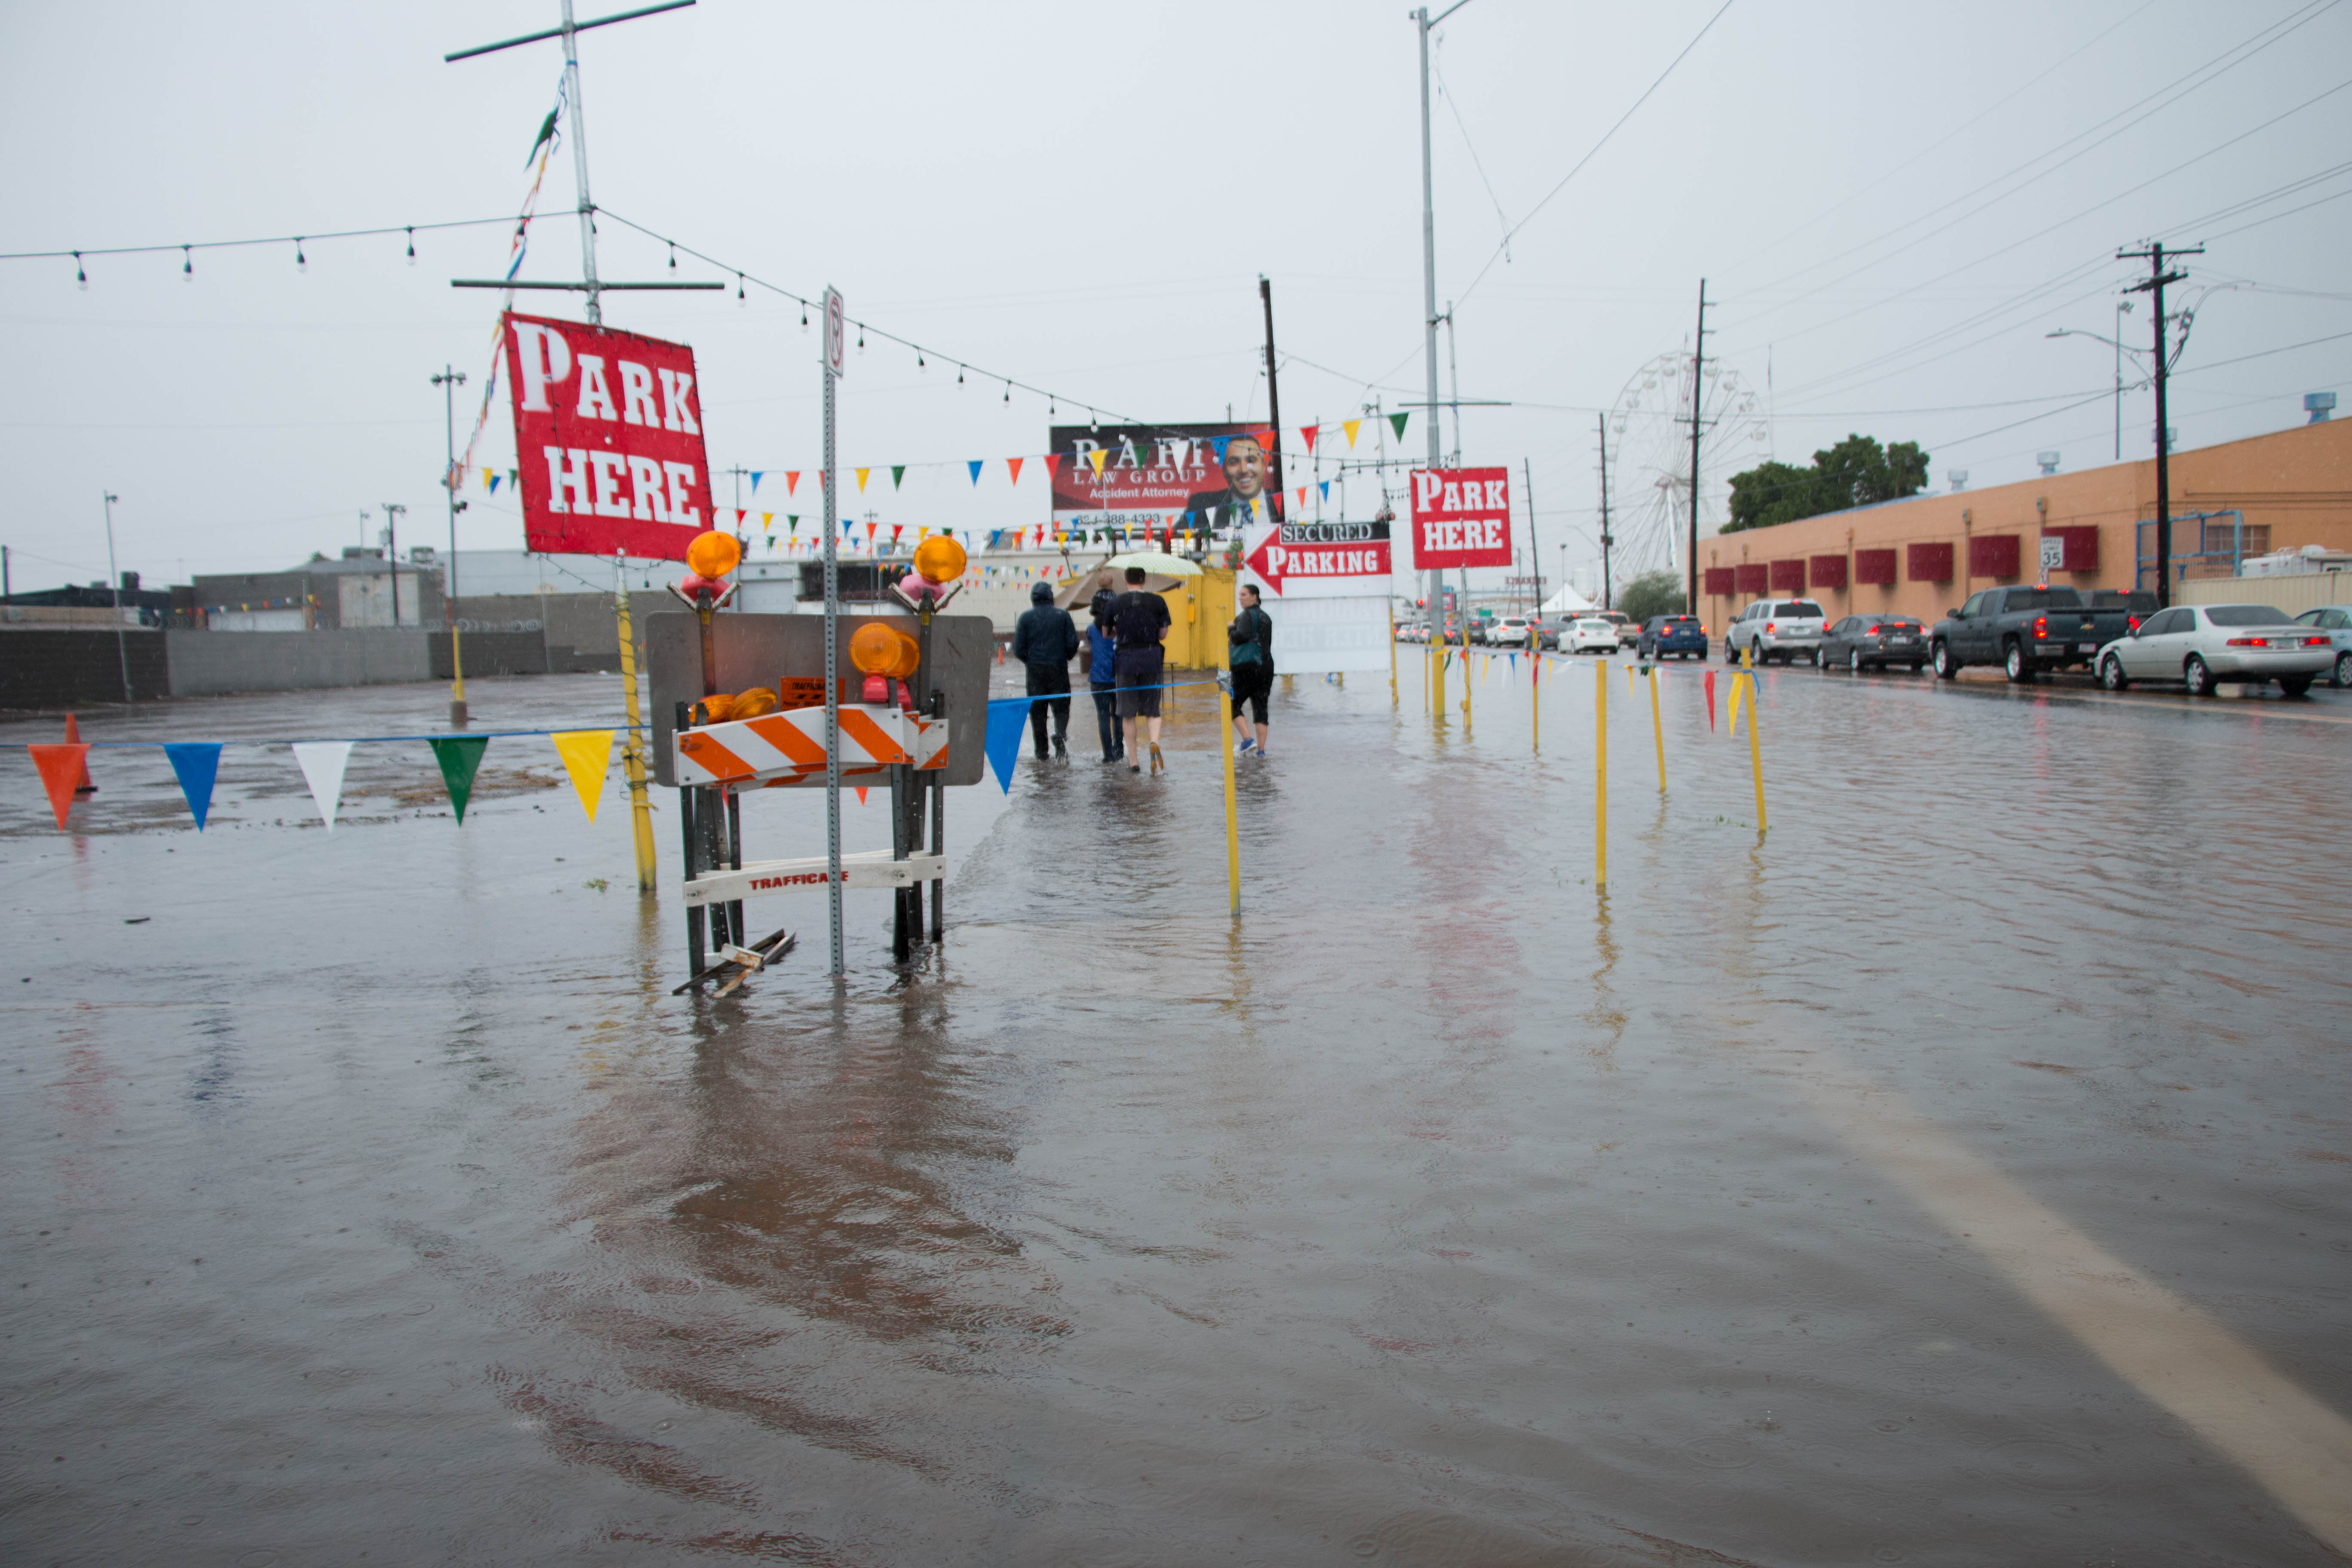 October seizes record of wettest month for Phoenix with help of Sergio – and we're only two weeks in | Arizona Central